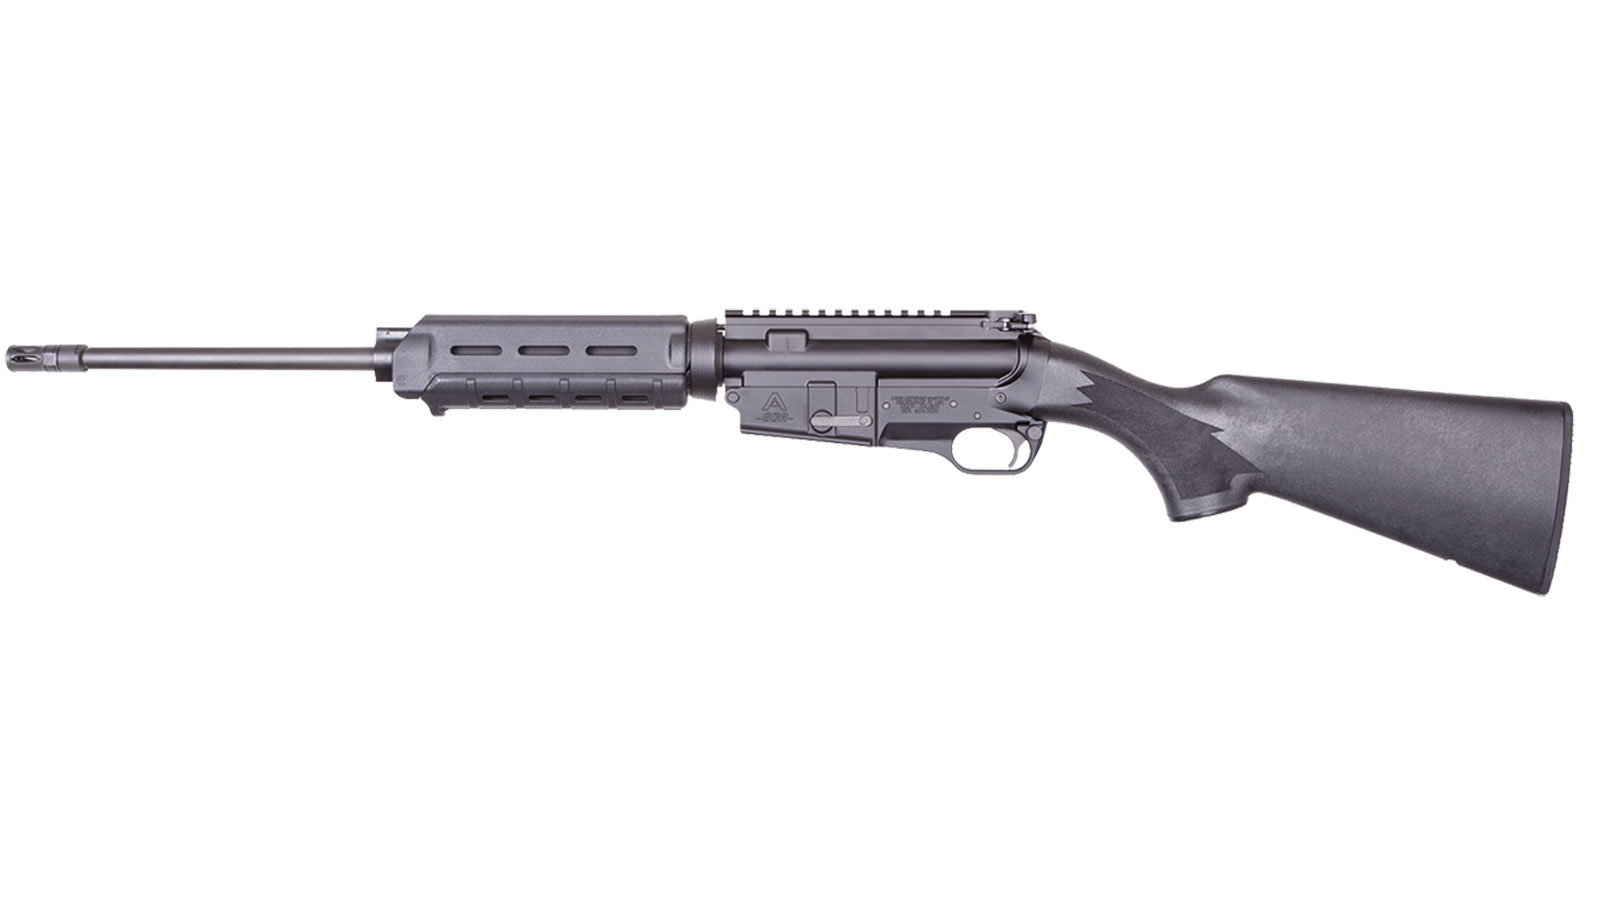 Ares SCR Takedown Rifle 5.56 16.25-inch Threaded Barrel